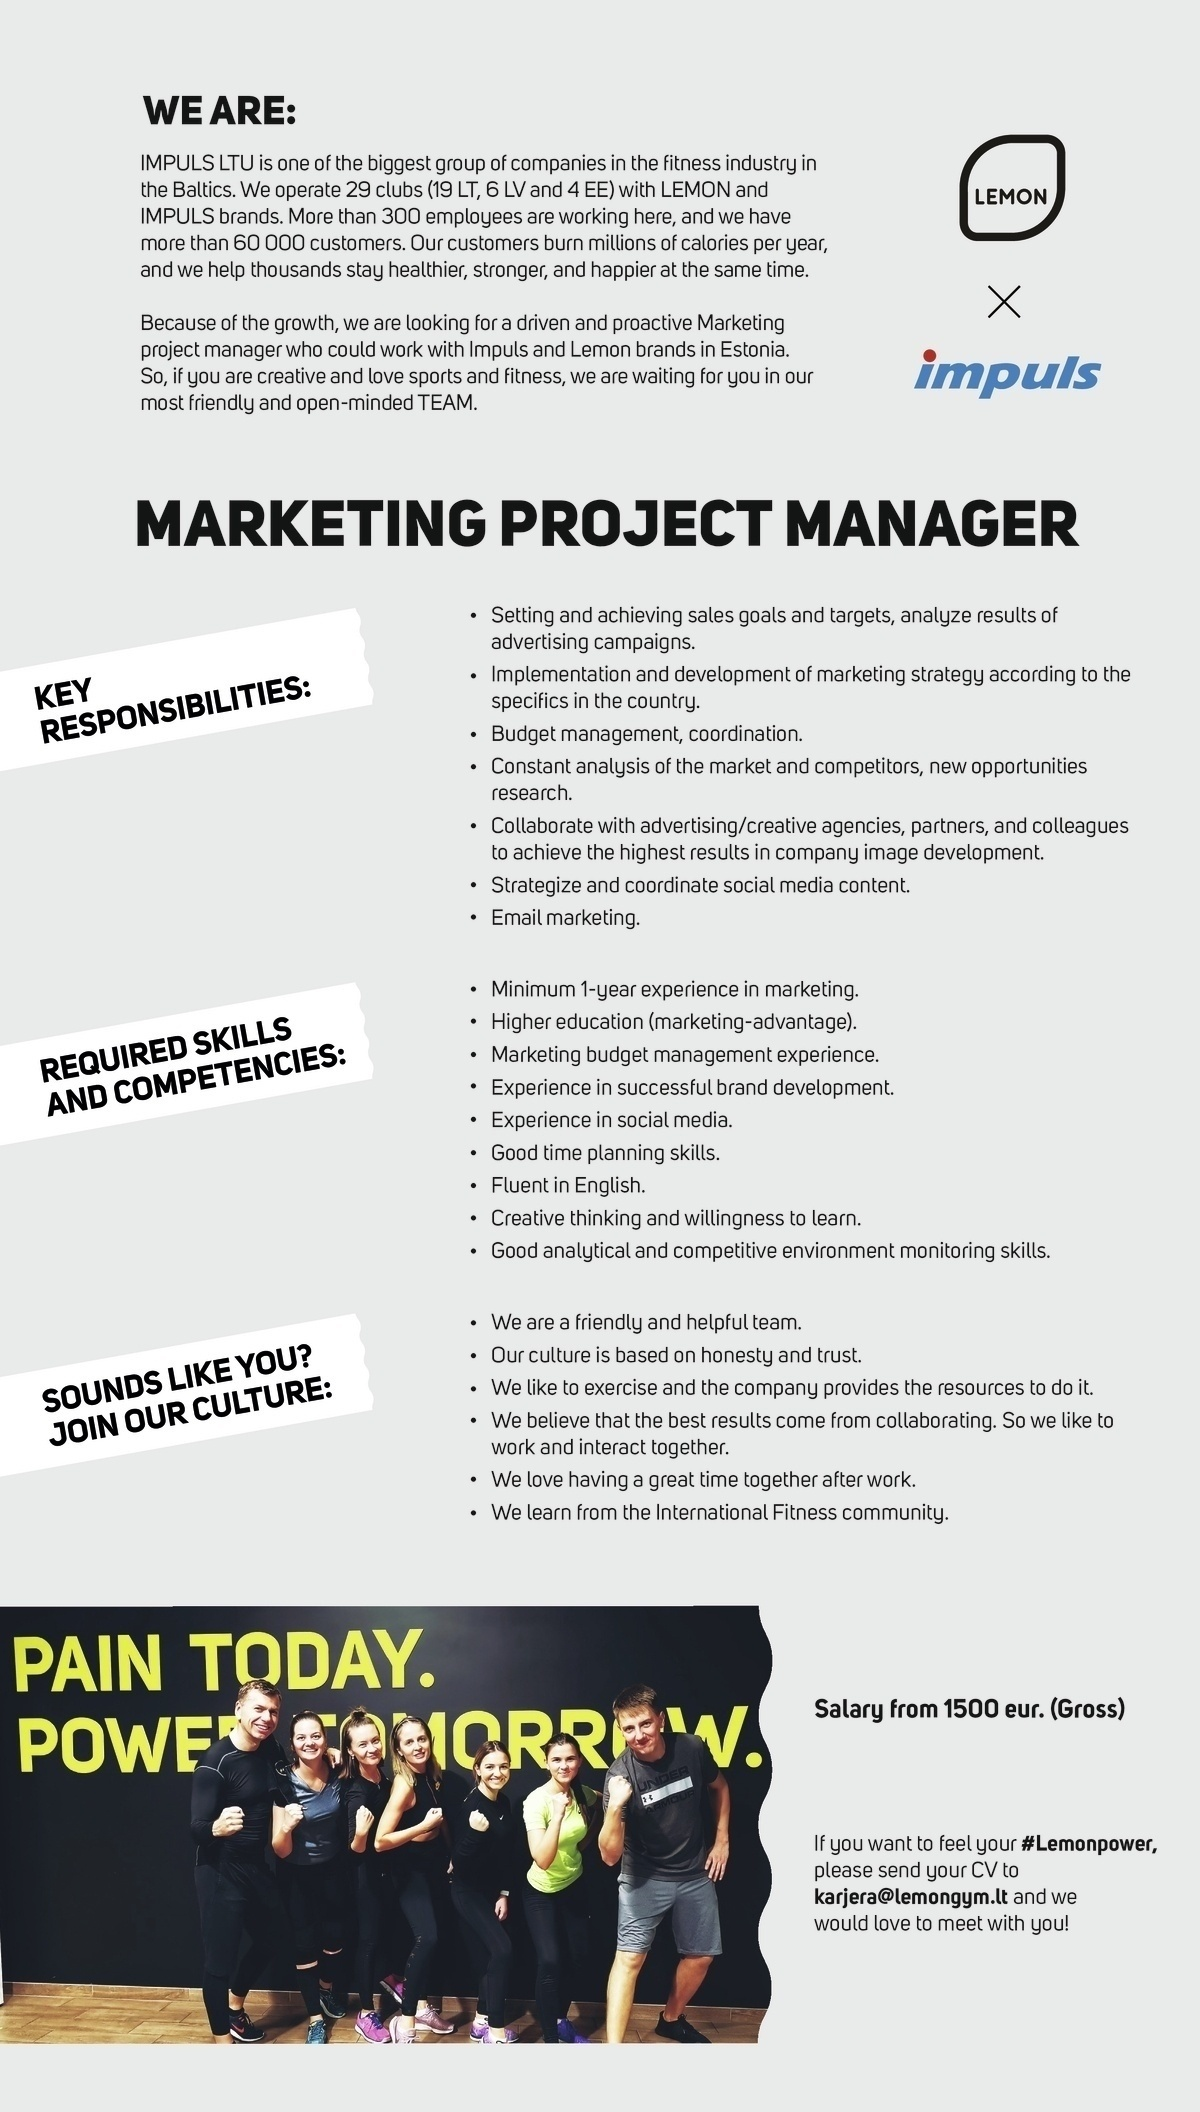 Lemon Gym OÜ Marketing project manager